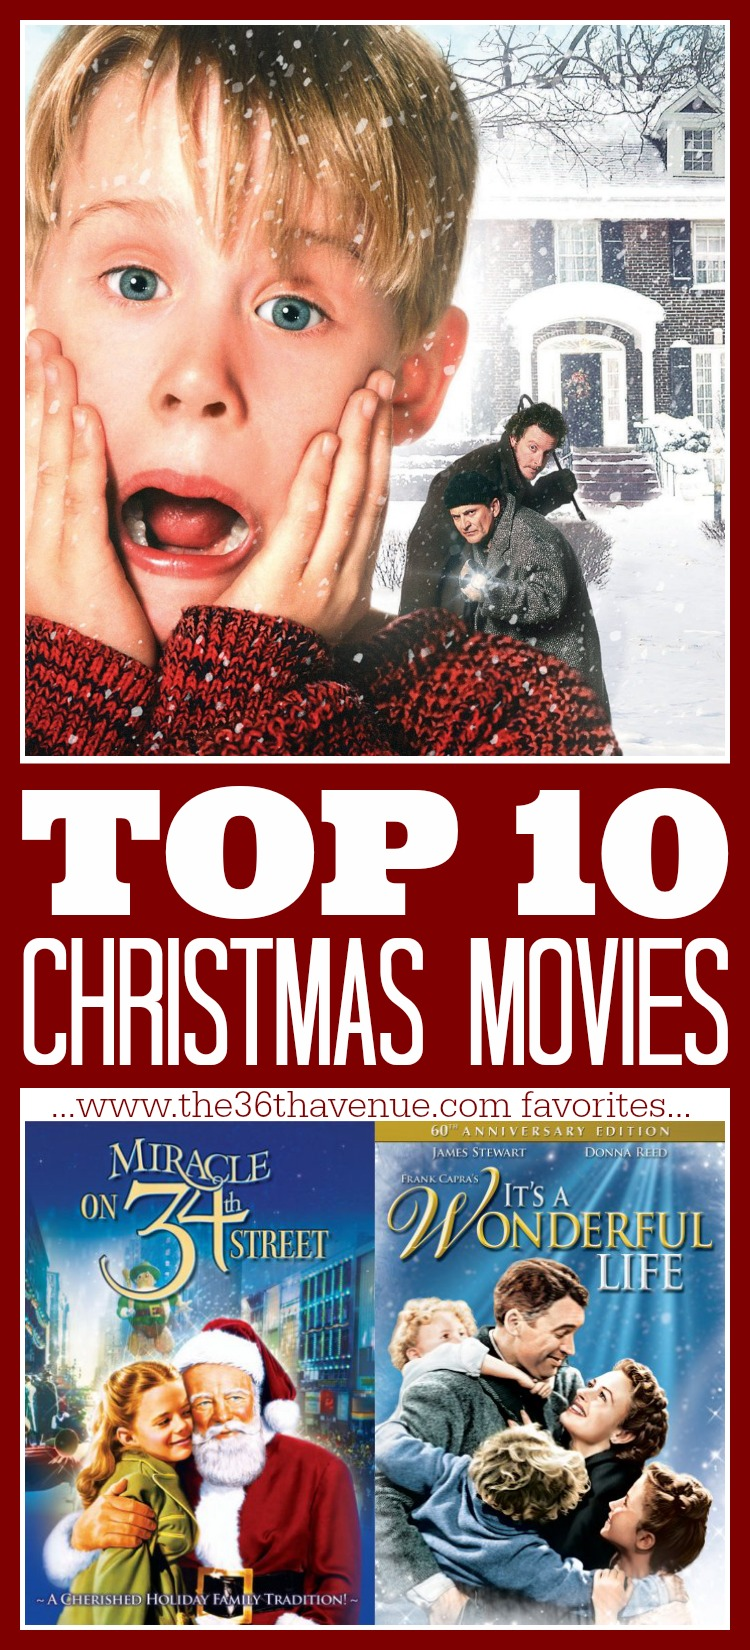 Top 10 Christmas Movies - The 36th AVENUE